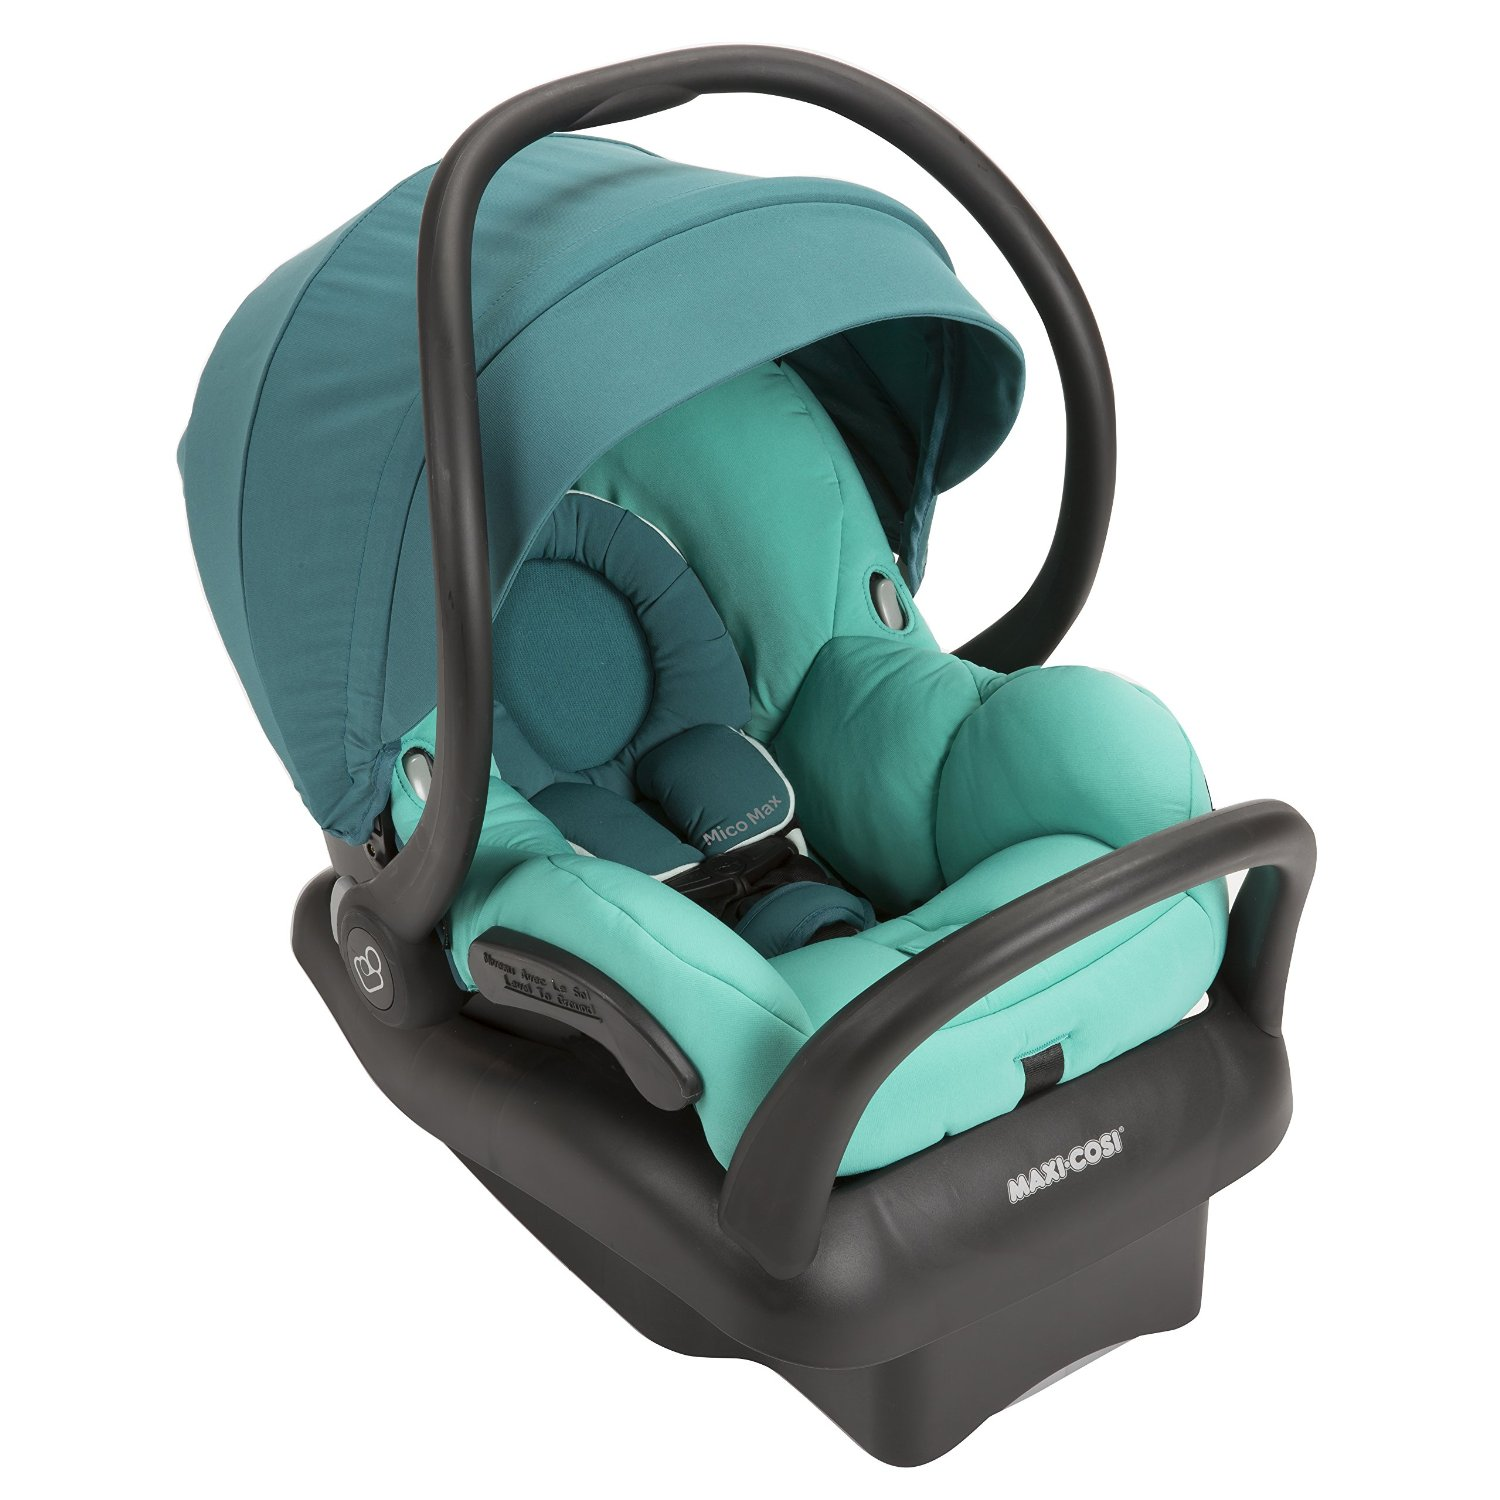 maxi cosi mico reviews the lightest infant car seats in. Black Bedroom Furniture Sets. Home Design Ideas